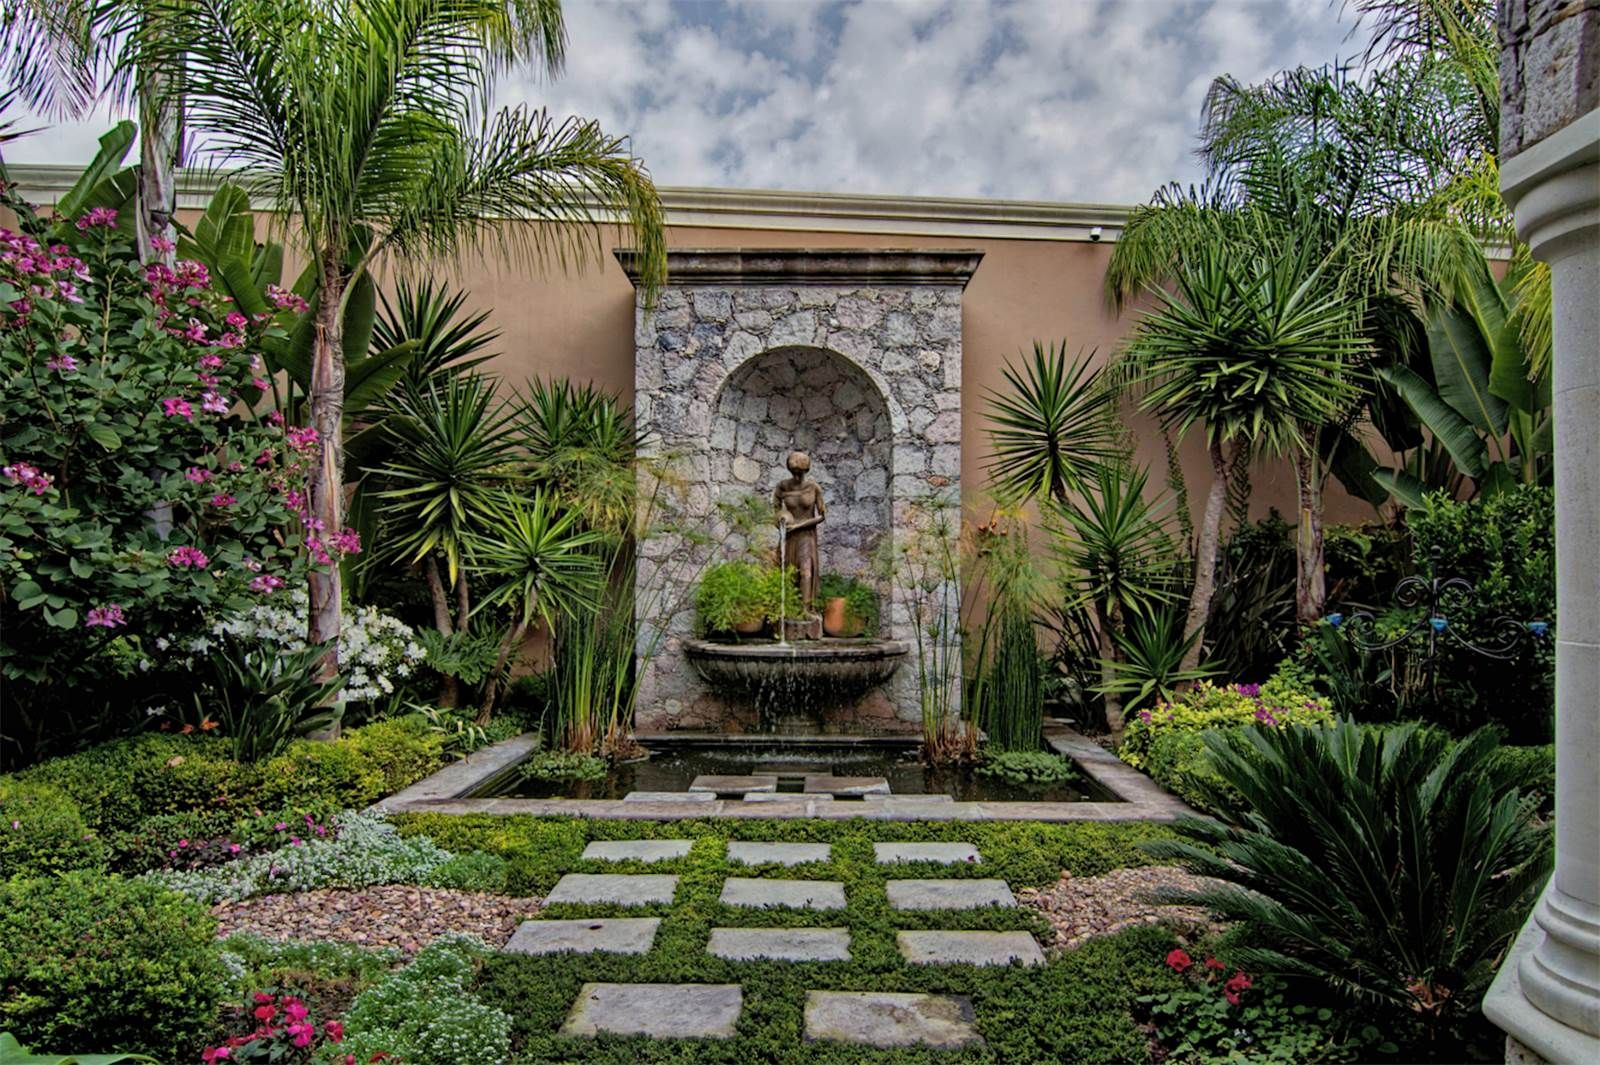 san miguel de allende single guys Discover sense, a rosewood spa in san miguel de allende the mexico luxury spa offers transformative signature treatments in a sublime environment.